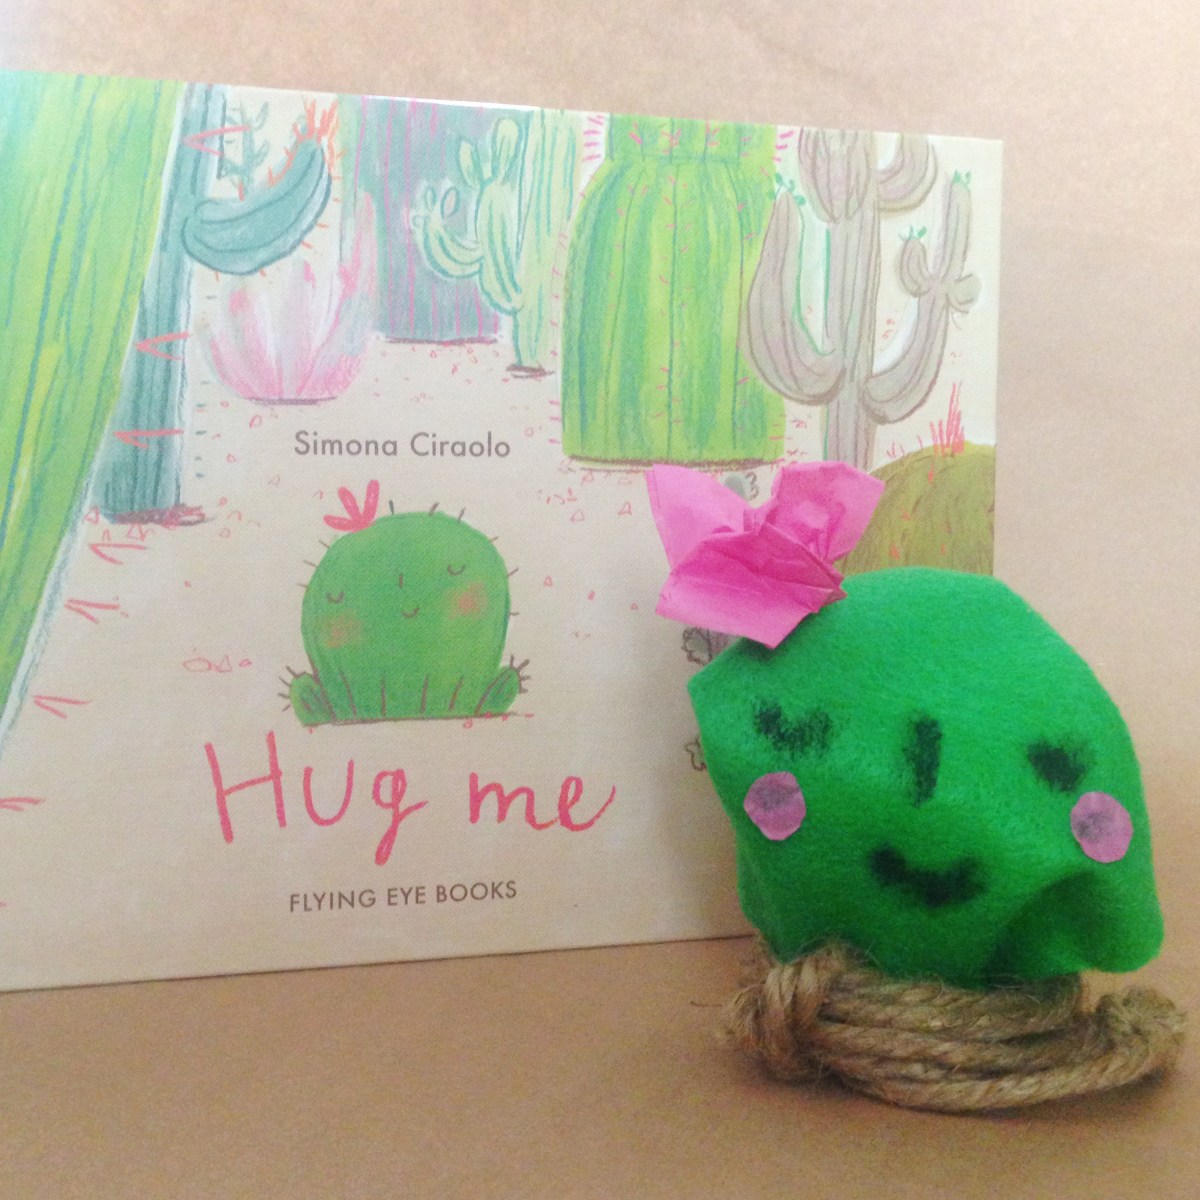 hug me + cute little cactus craft